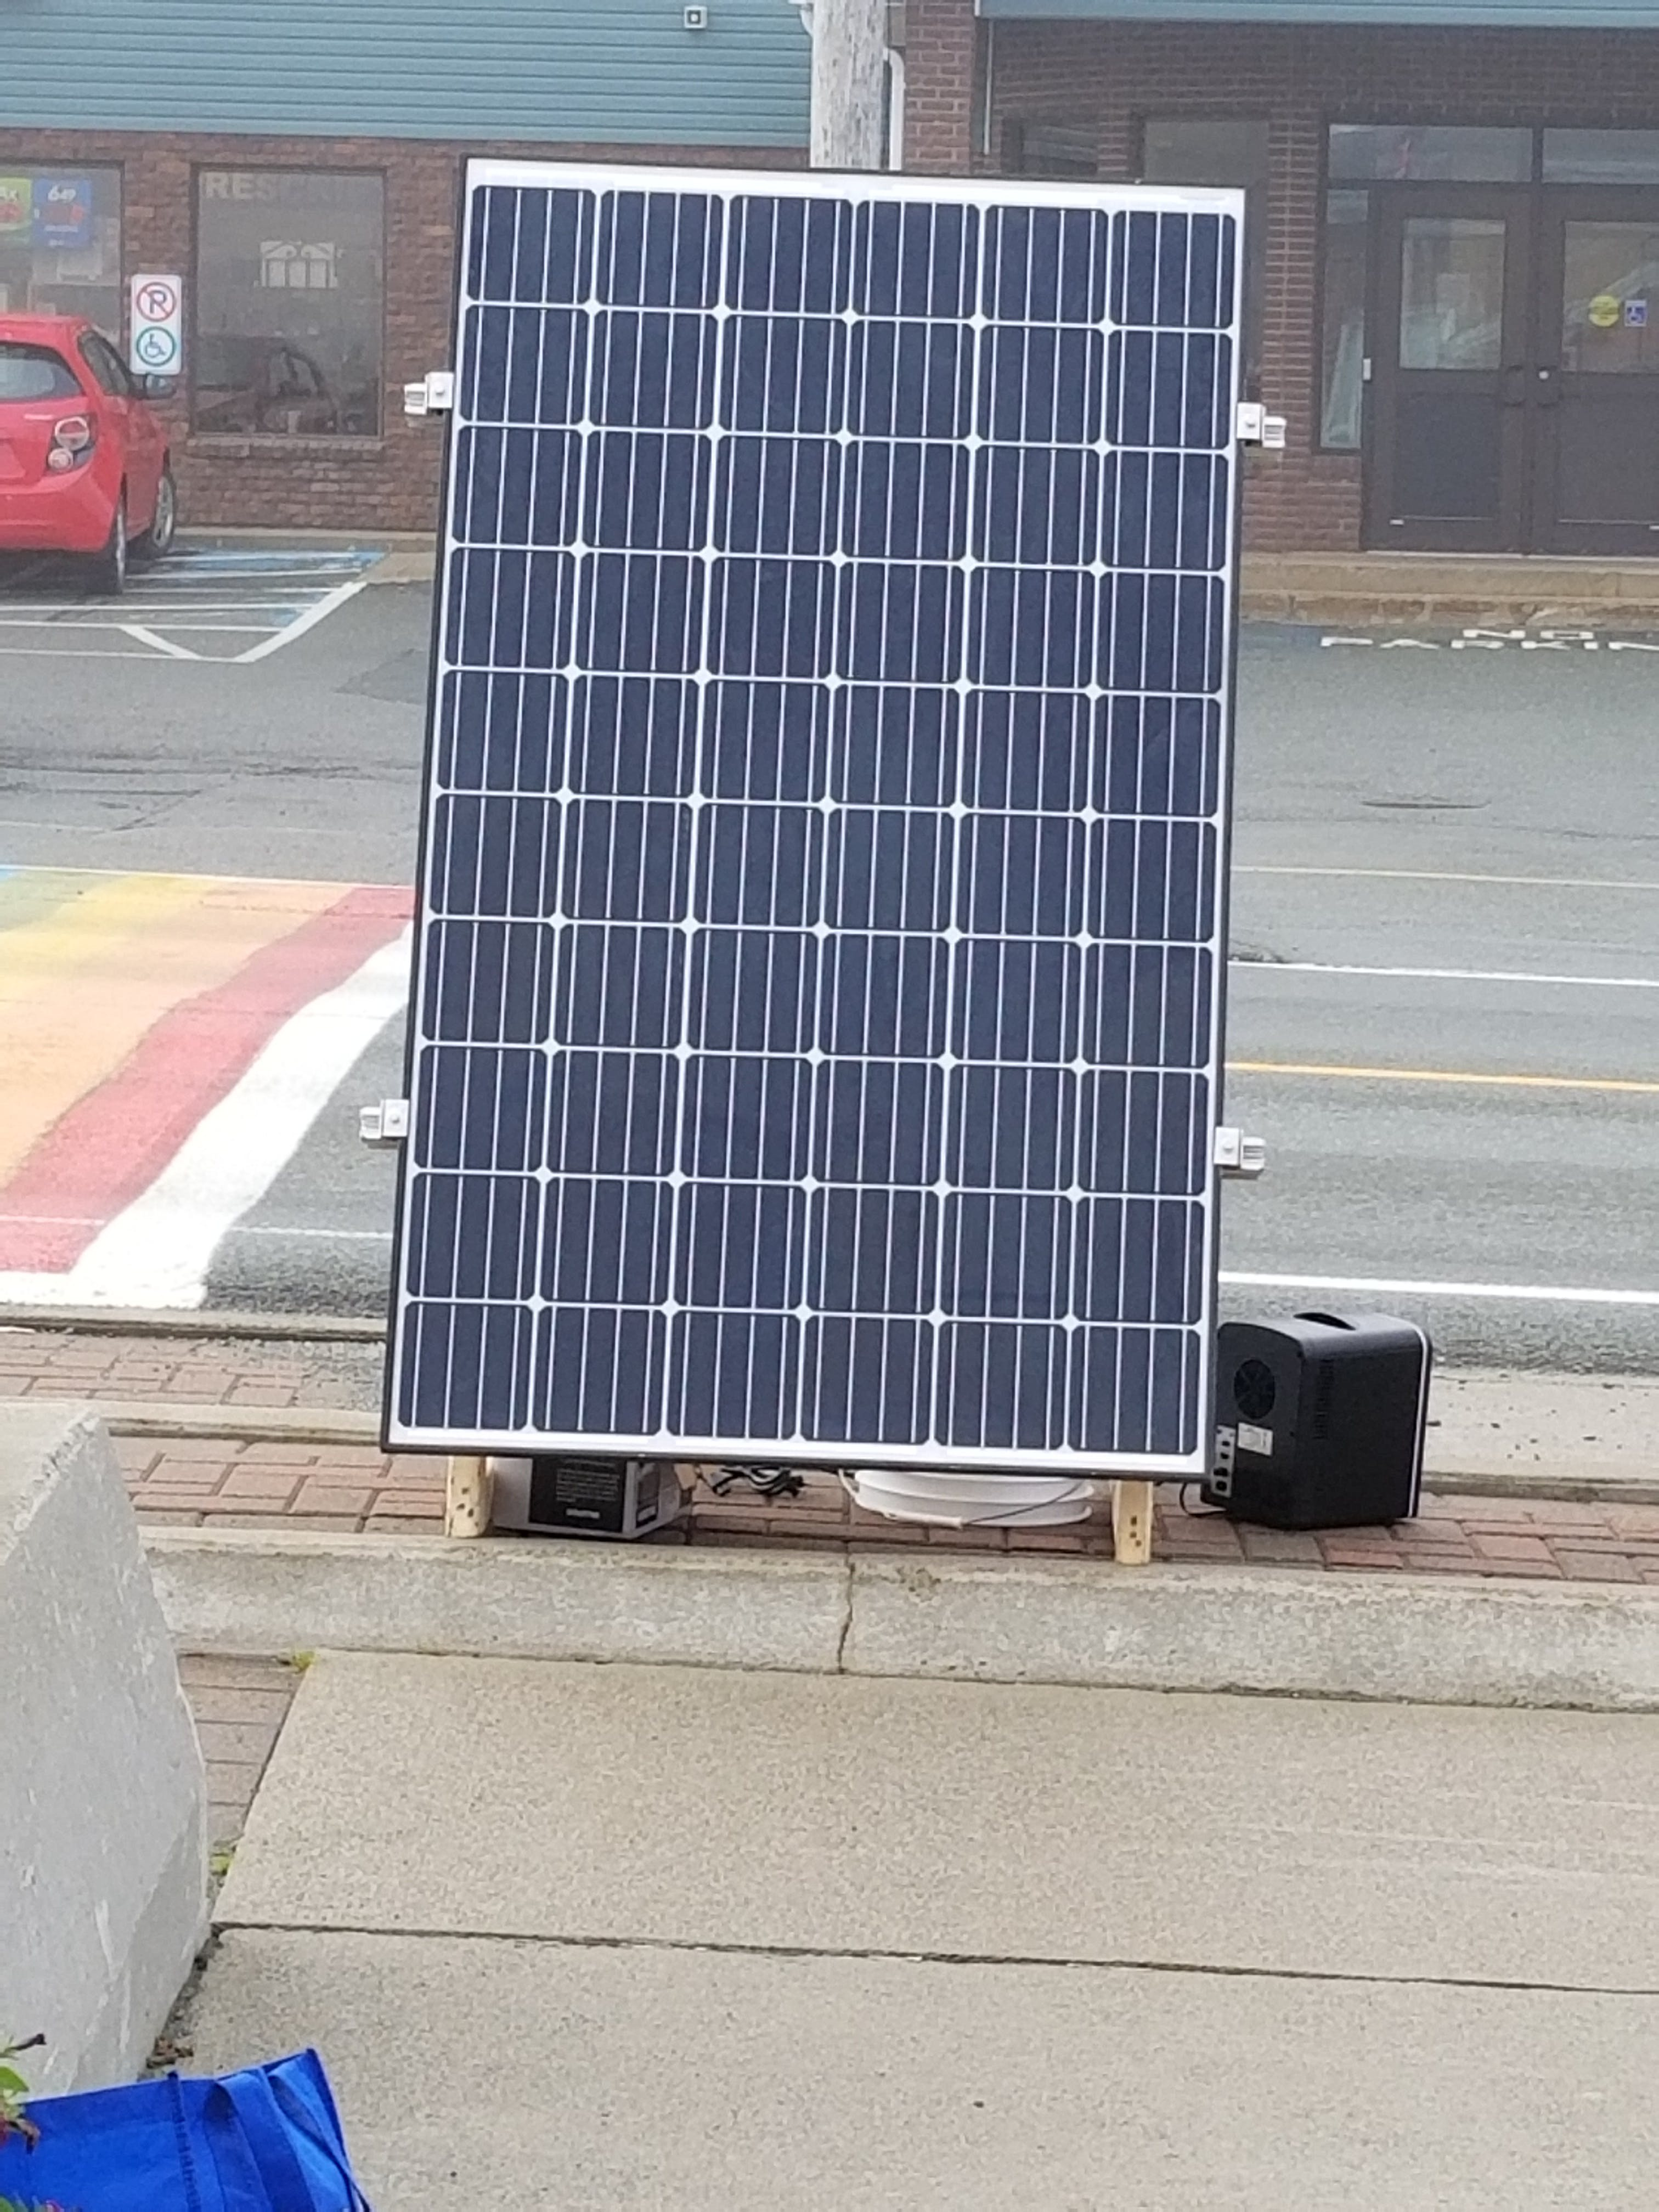 Town Hall Solar Panel Installation - Oct 2020